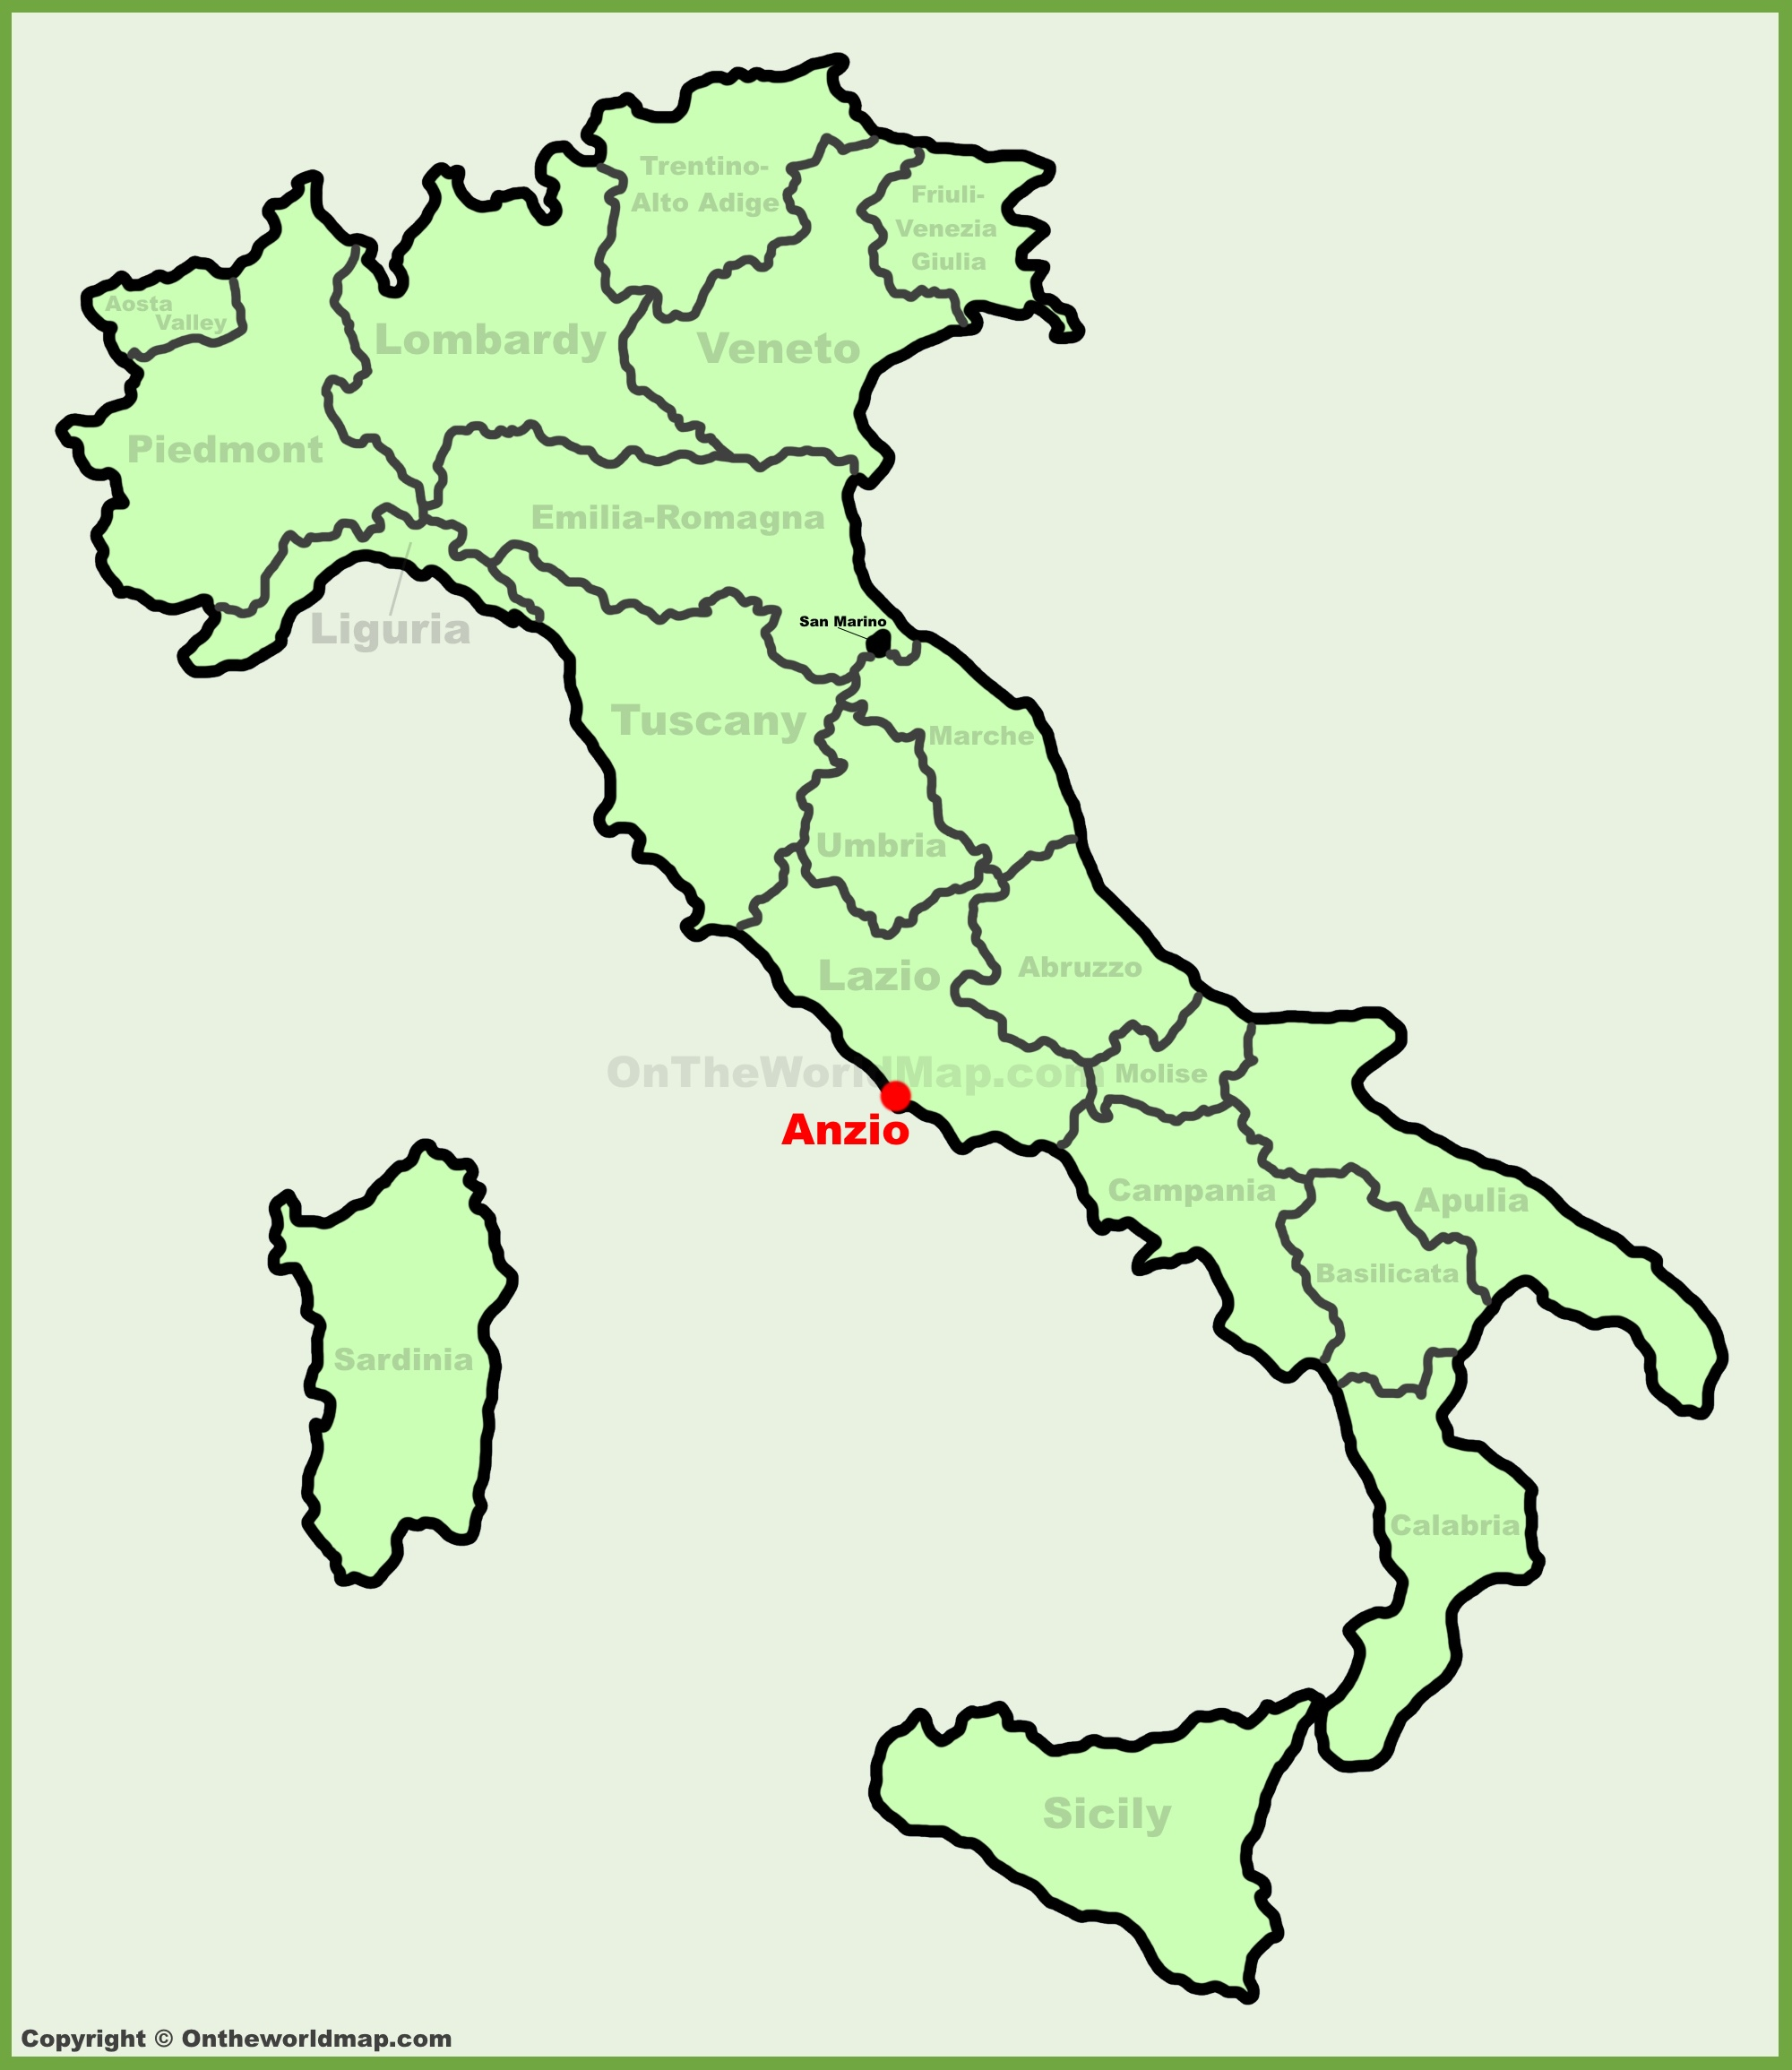 Anzio location on the Italy map